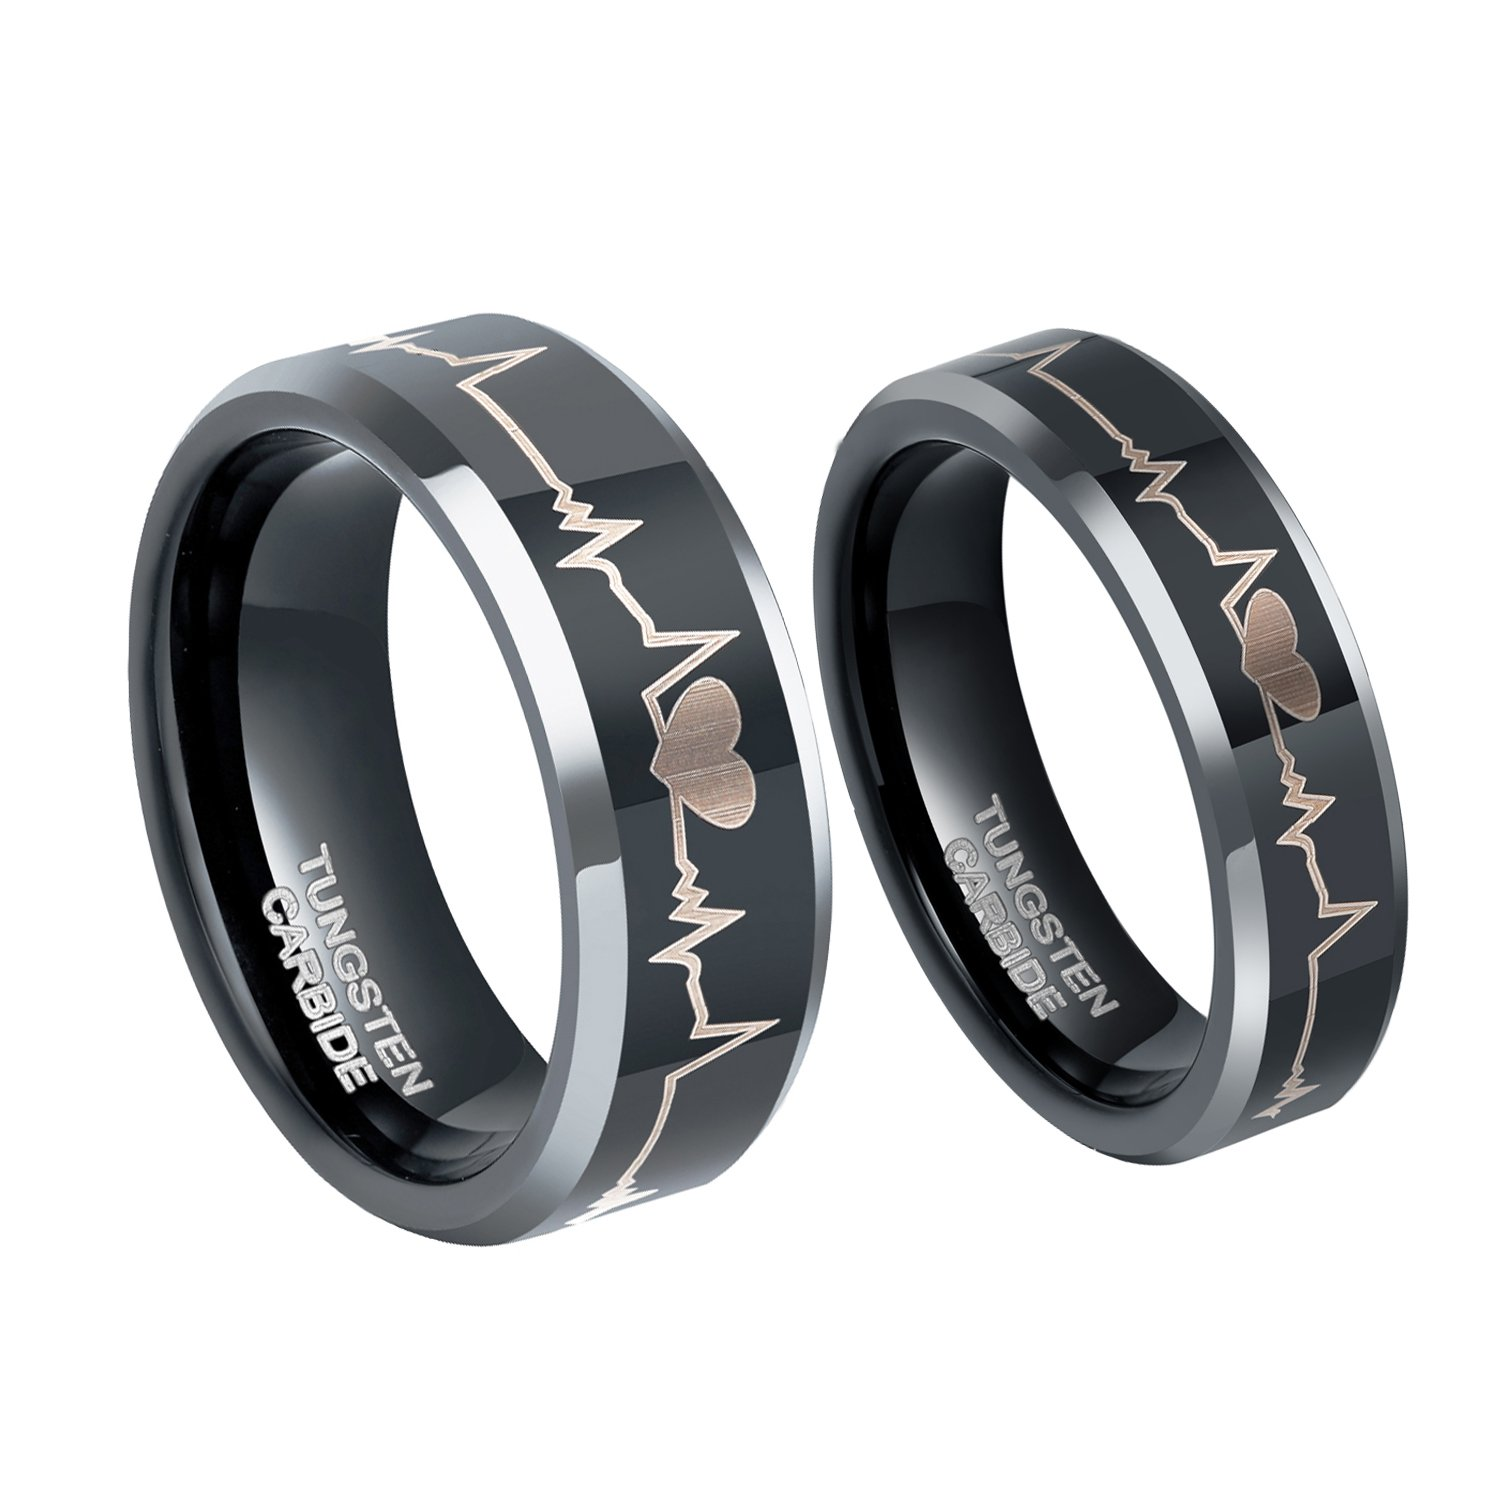 6mm EKG Heartbeat Wedding Band Tungsten Carbide Anniversary Promise Rings for Couples Size 7.5